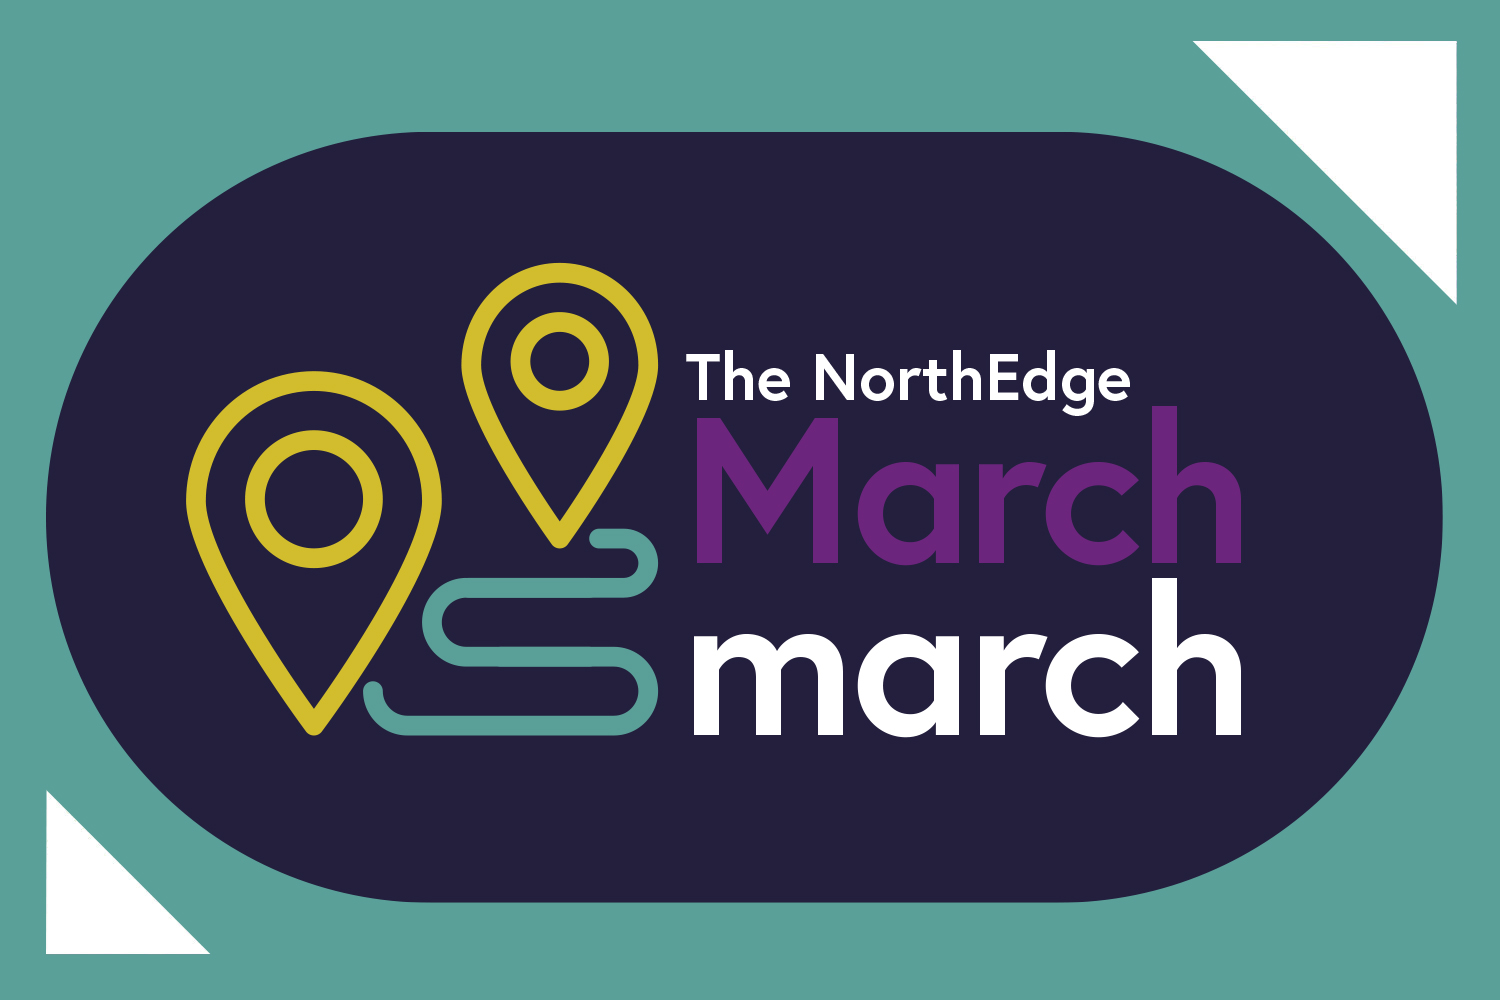 The NorthEdge 'March march'